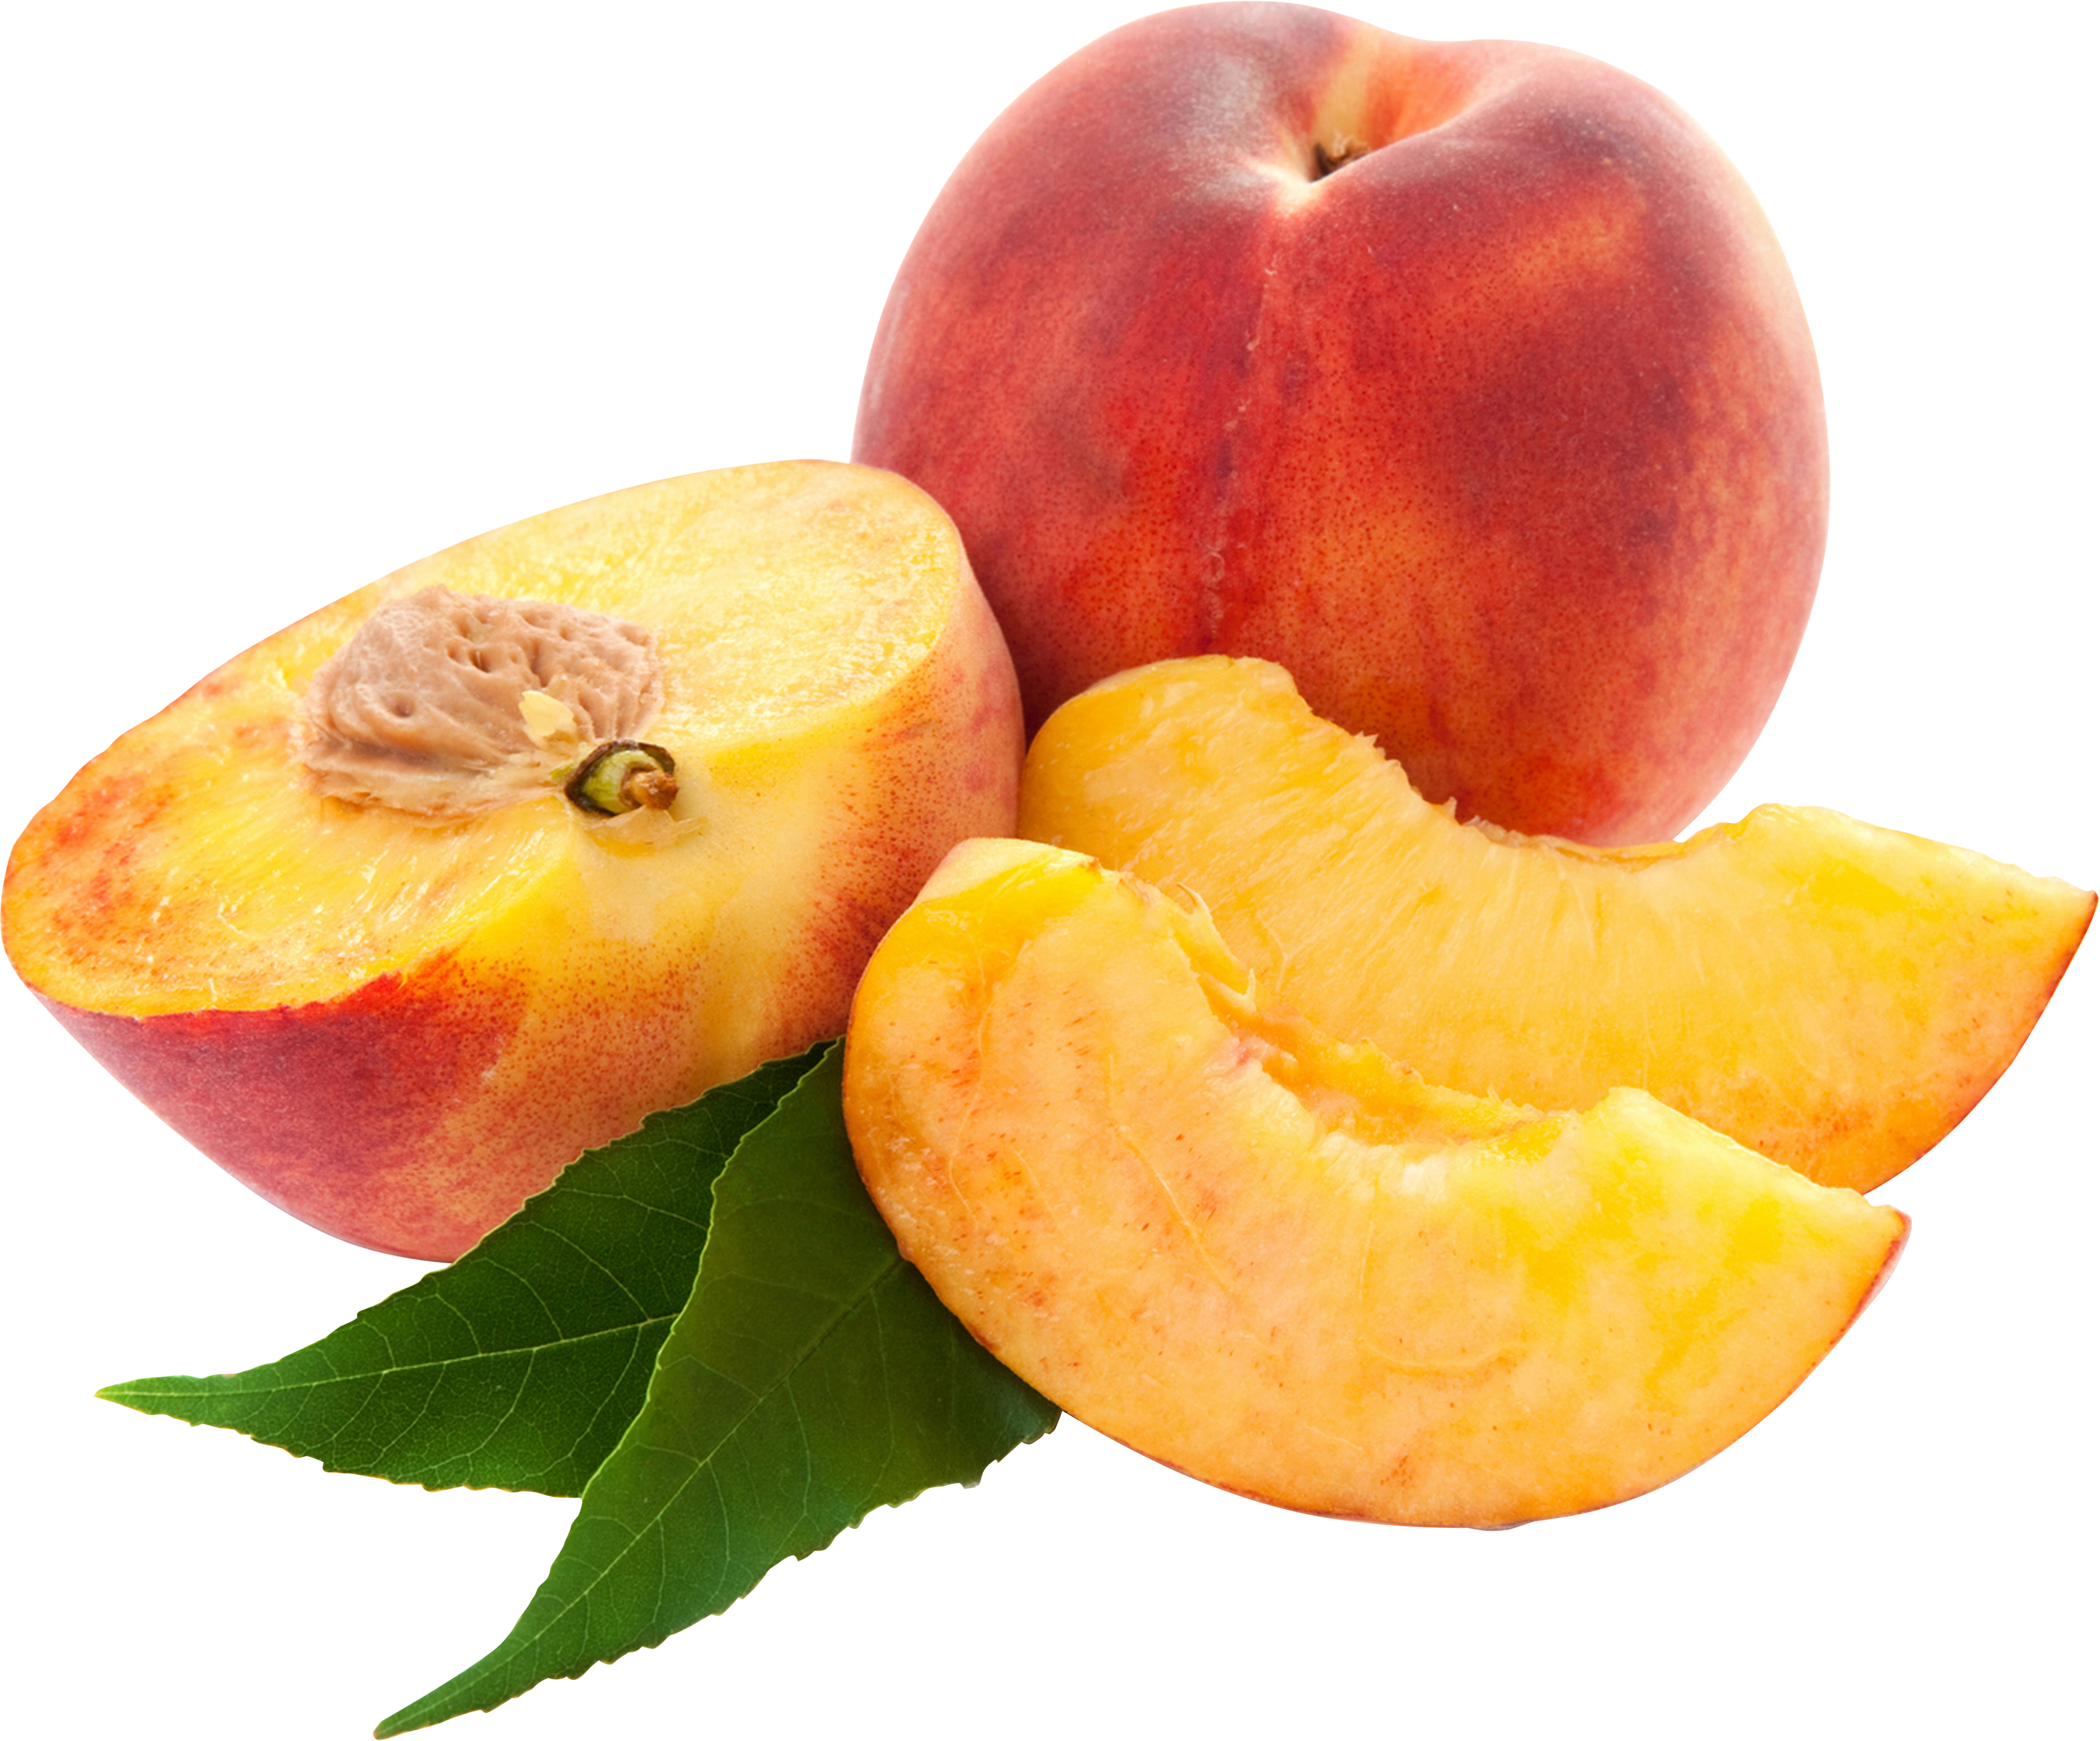 Peach PNG image, free download peach pictures.